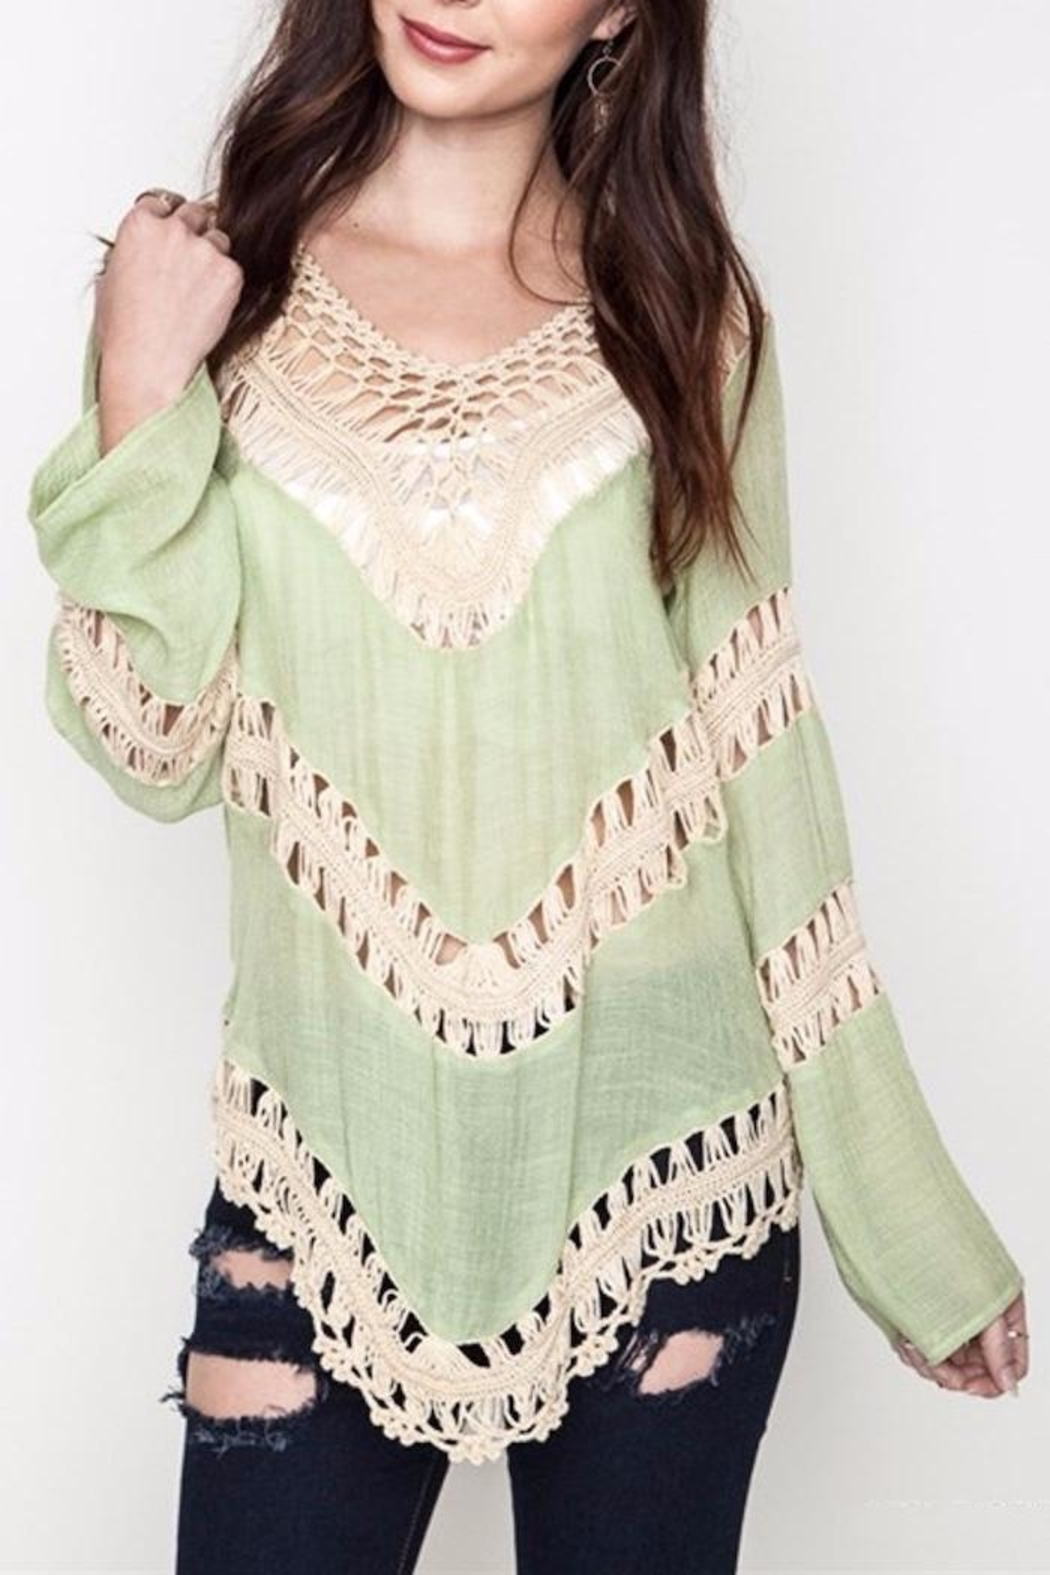 People Outfitter Crochet Festival Top - Main Image